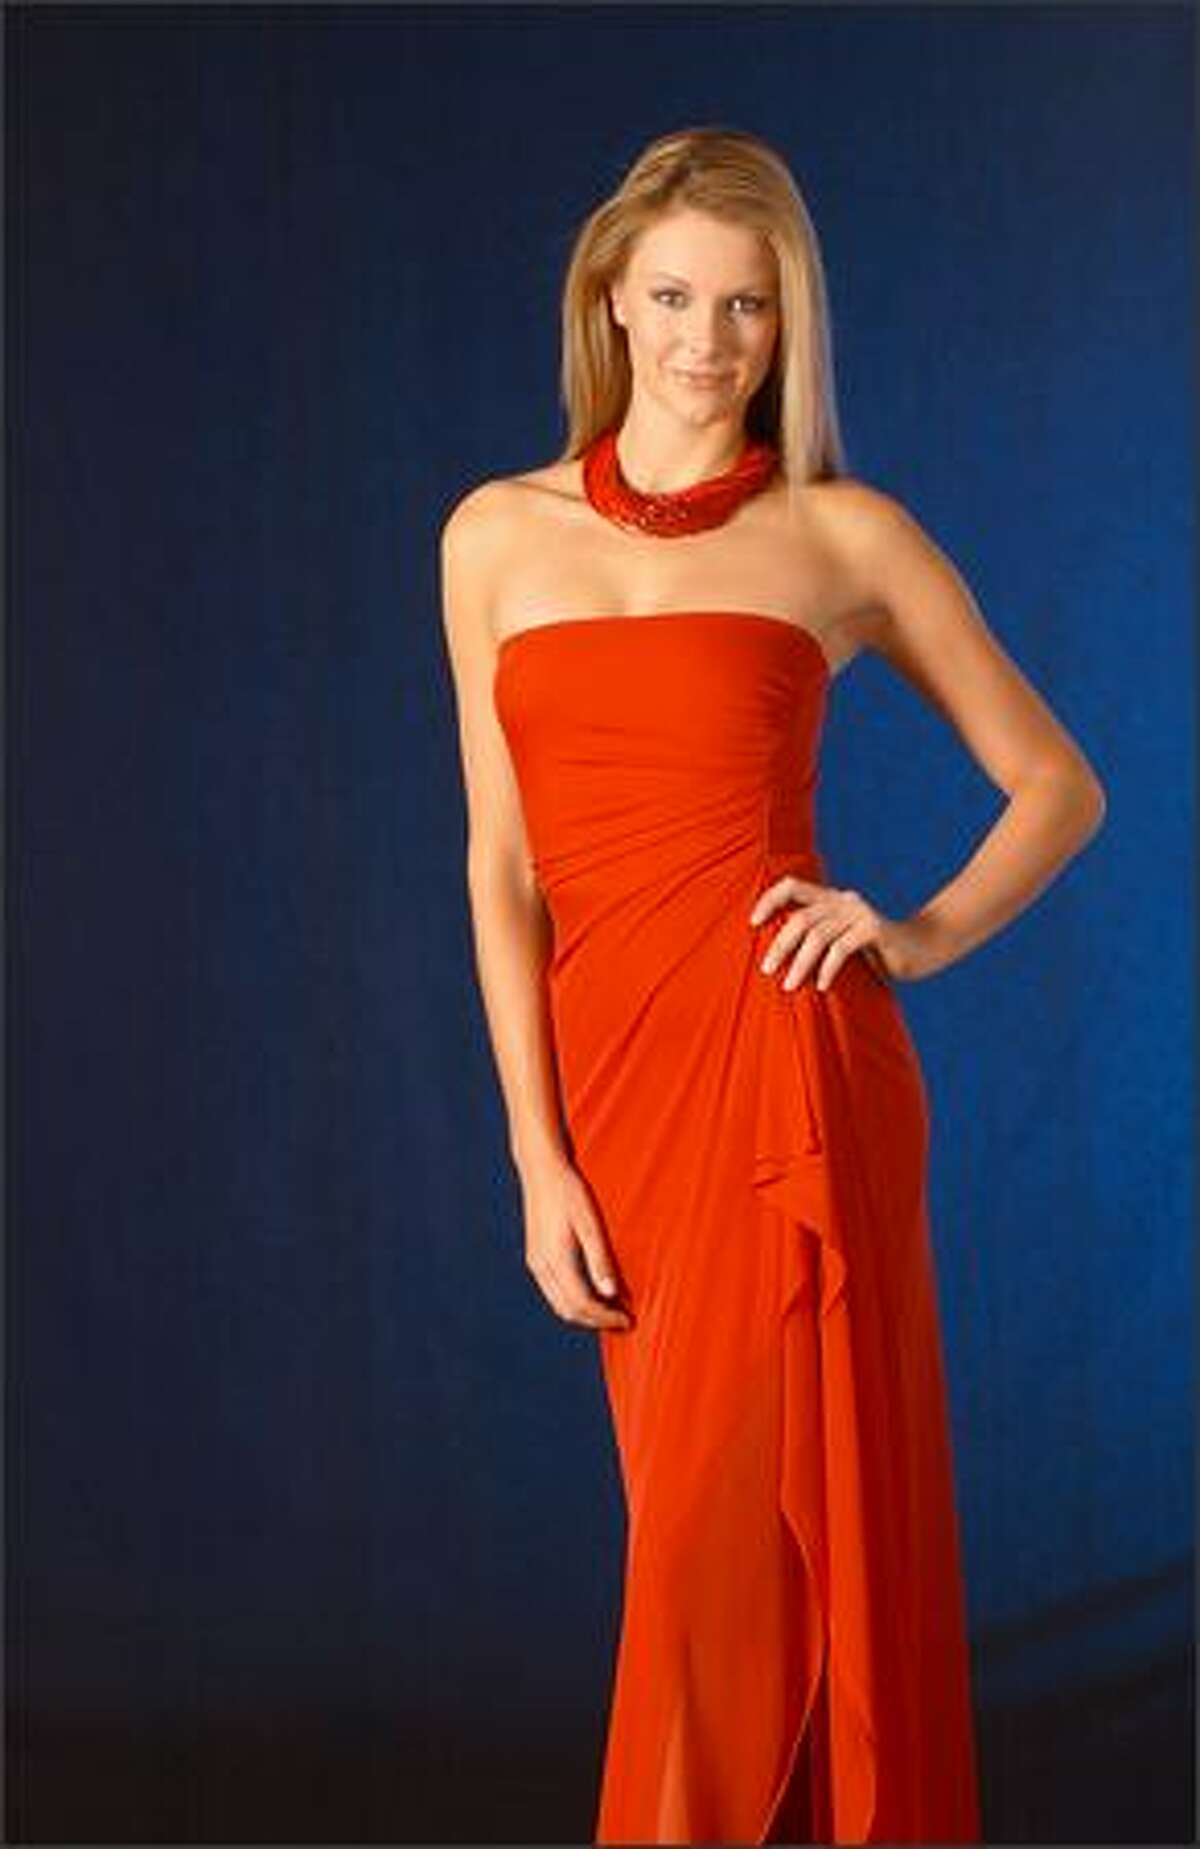 Jennifer Hawkins, Miss Australia, has her official portrait taken in mid-May at the Quito, Ecuador hotel of the delegates.